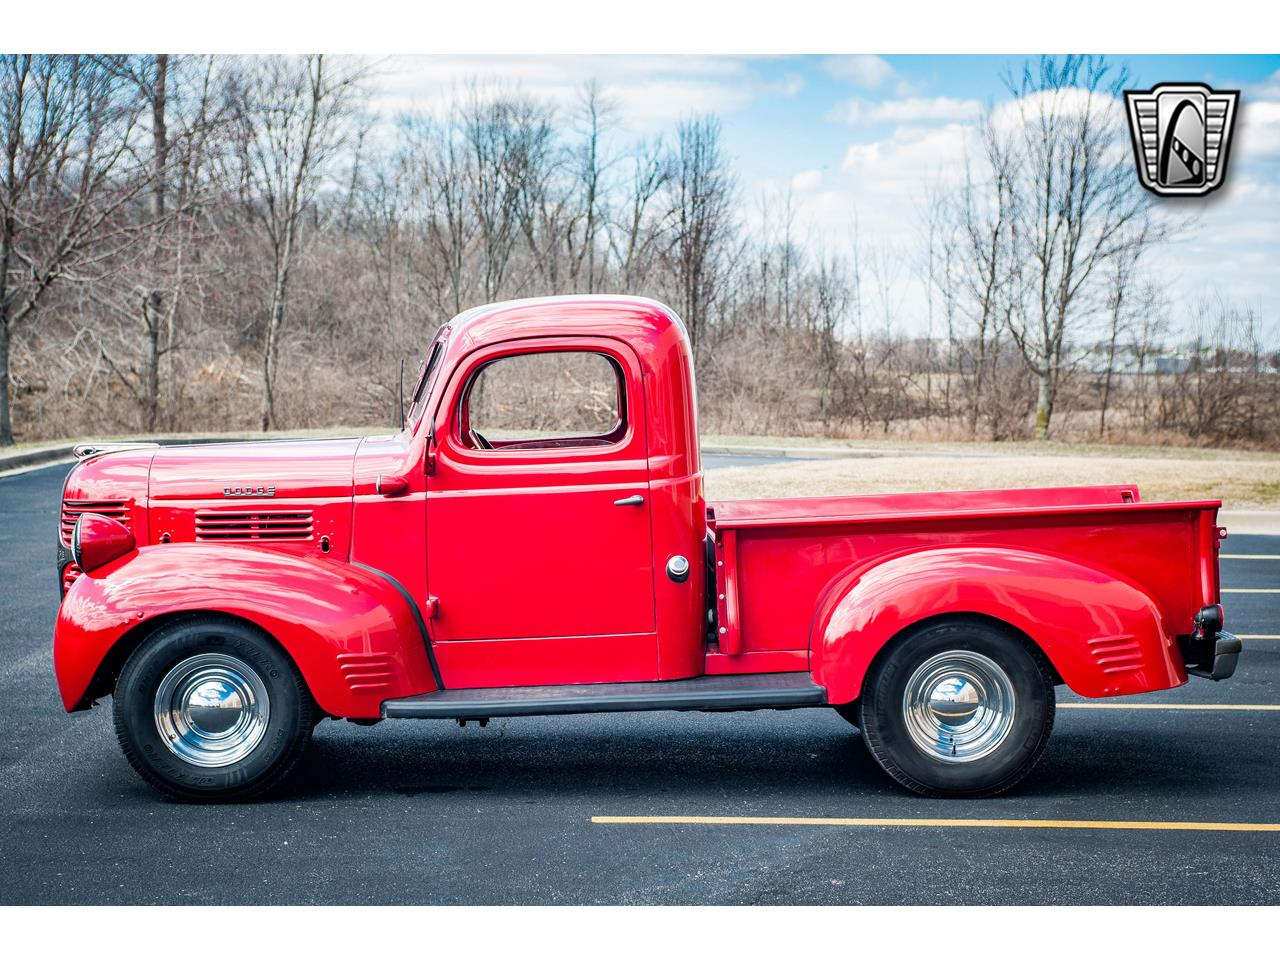 Large Picture of '45 Dodge Pickup located in Illinois - $25,500.00 - QB7O